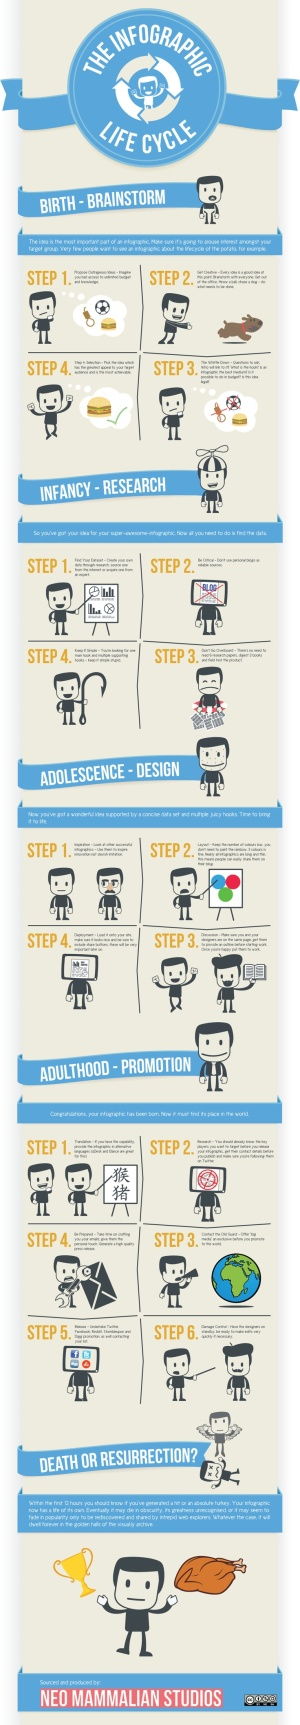 The Infographic Life Cycle